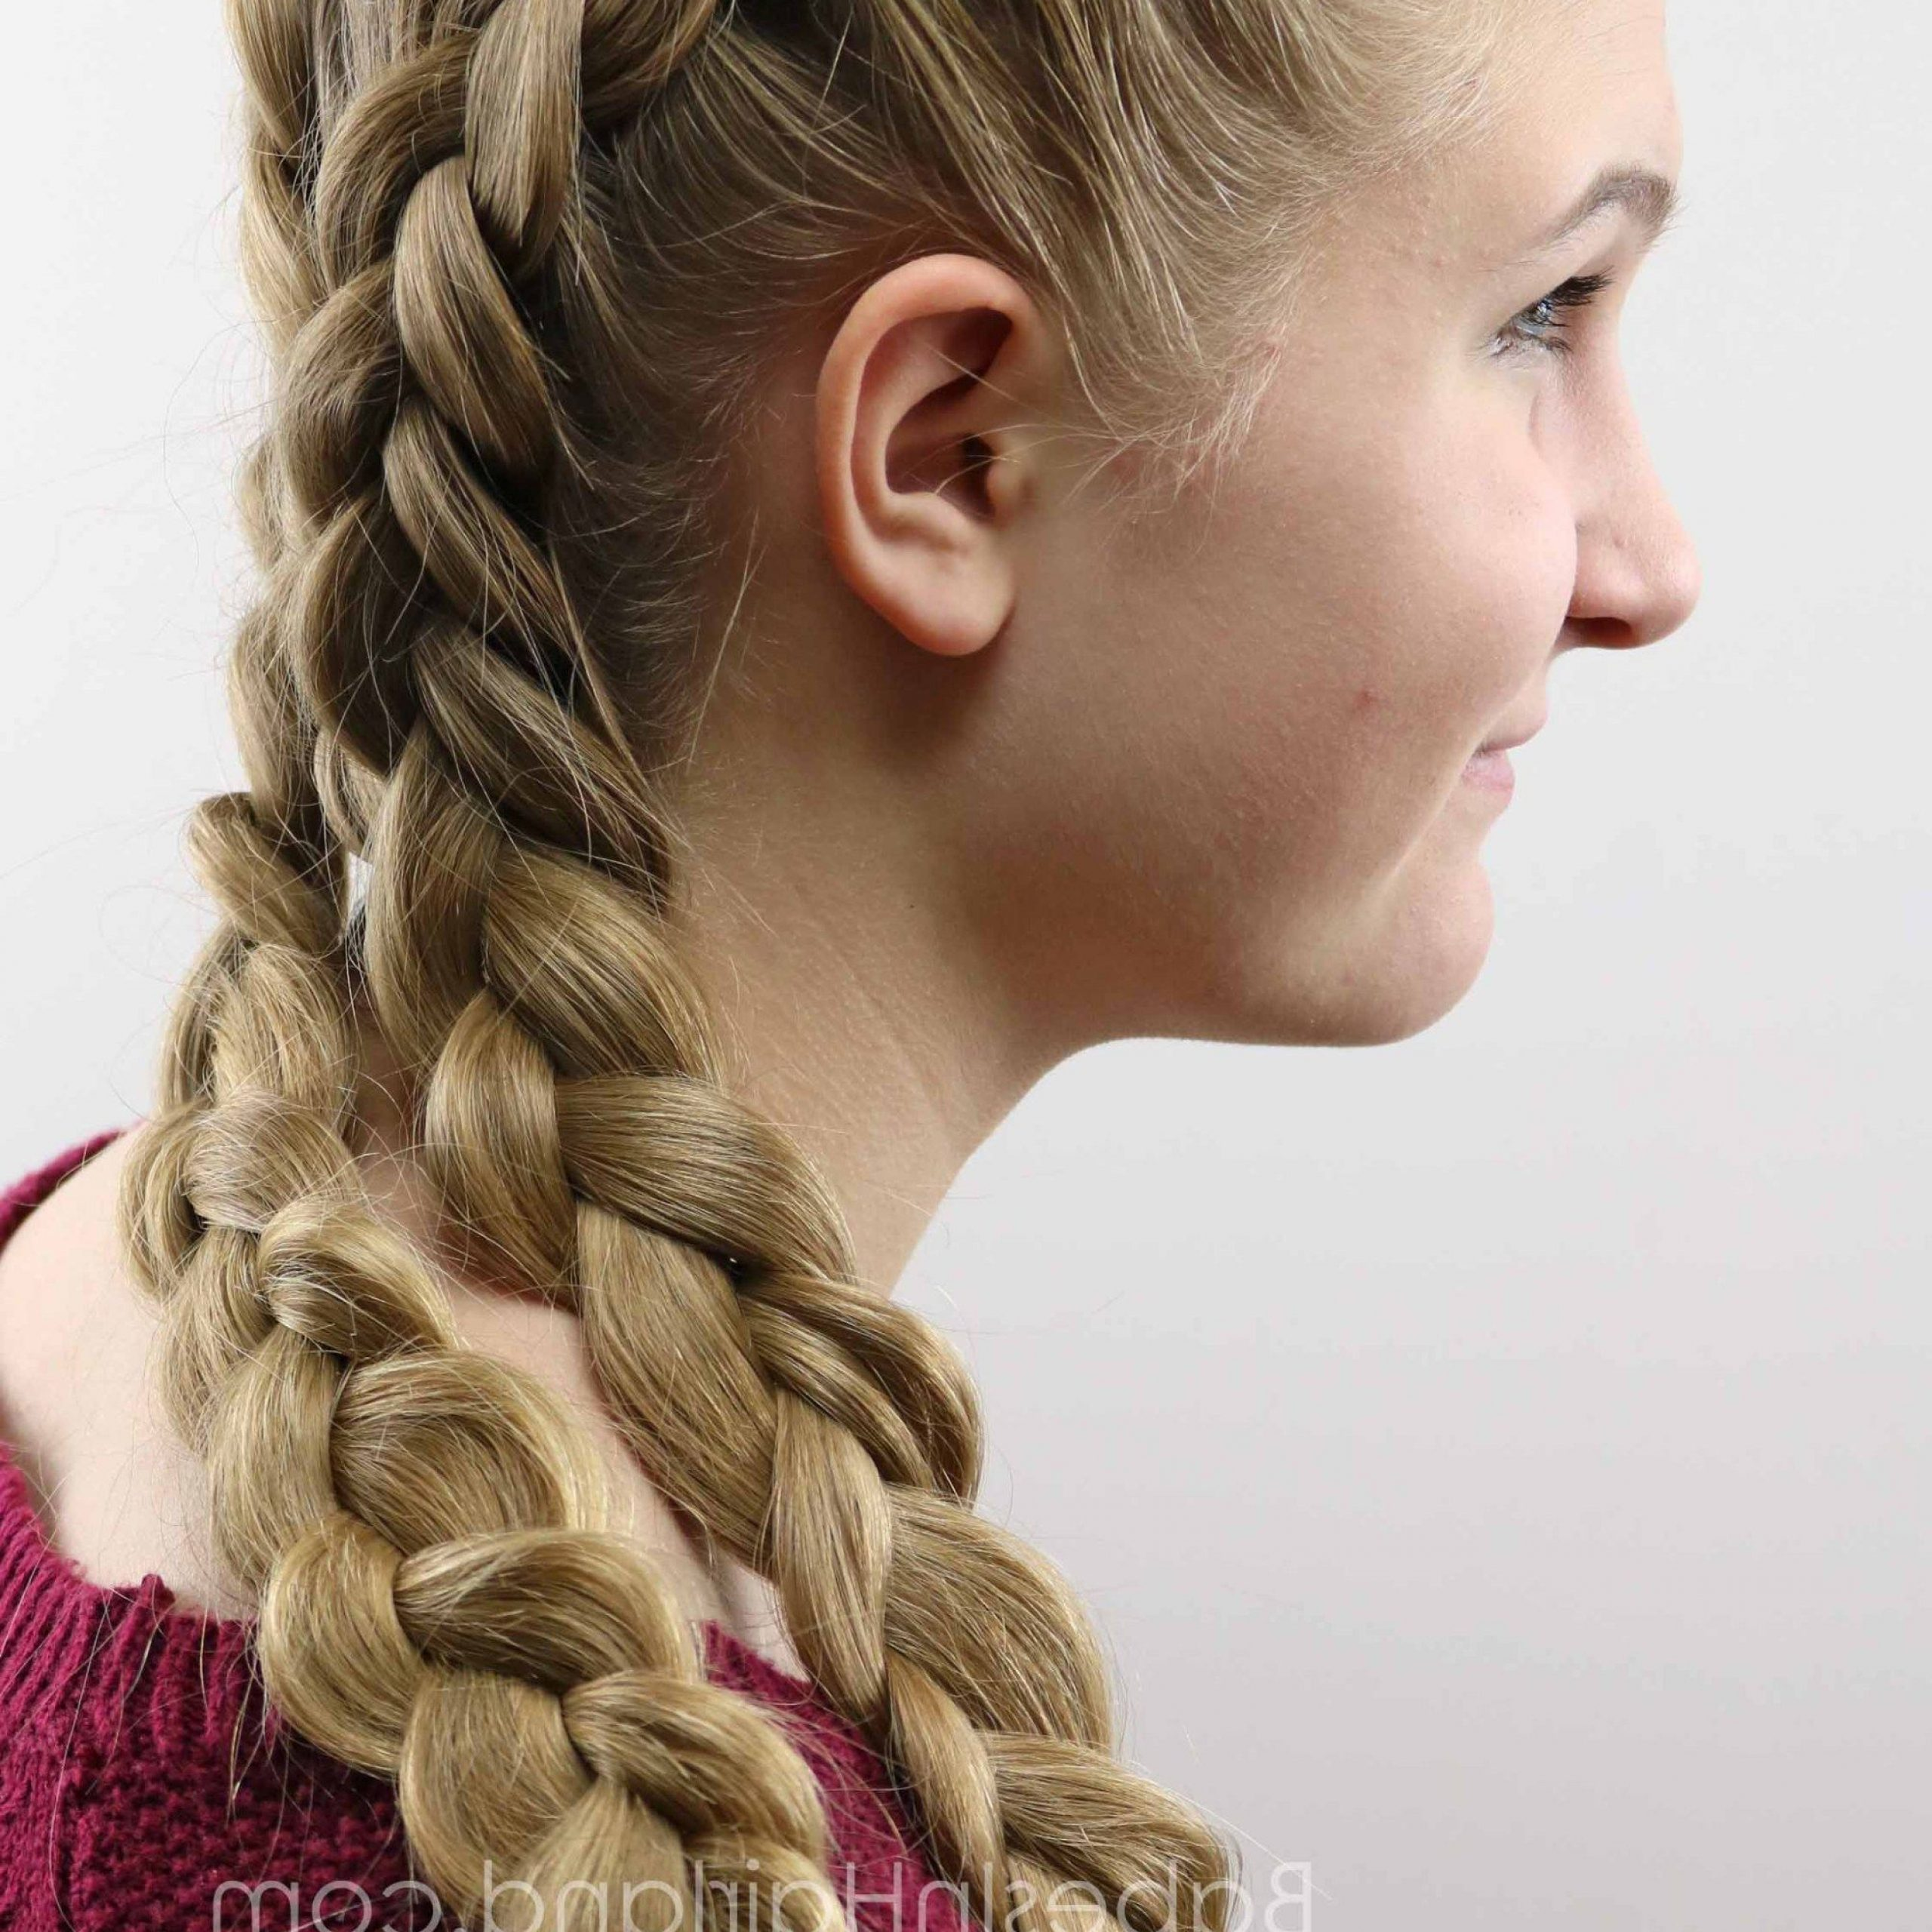 Well Known Asymmetrical French Braid Hairstyles Within 17+ Ethereal Summer Hairstyles Ideas (Gallery 7 of 20)